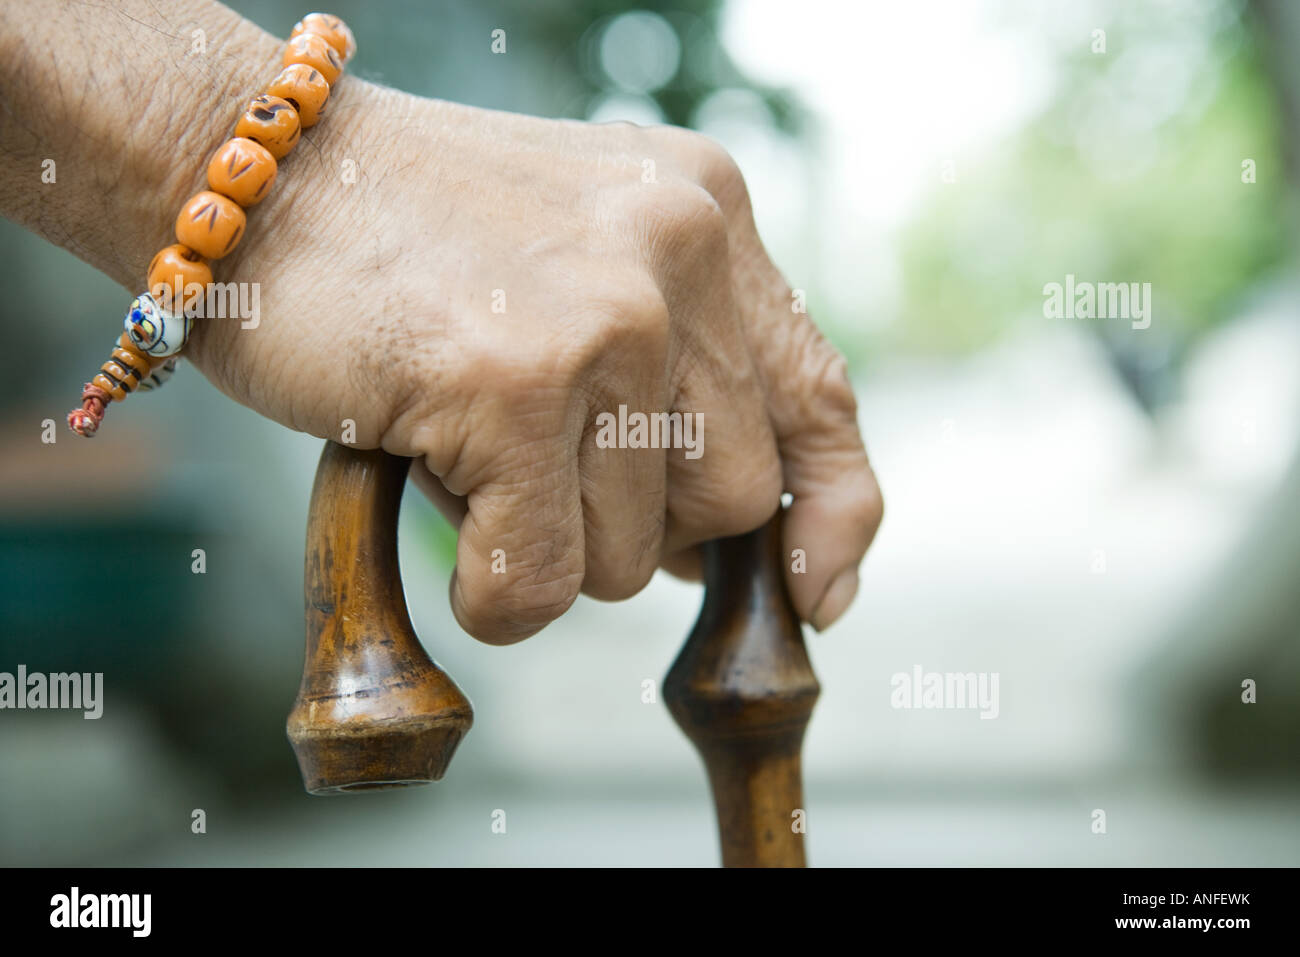 Vieil homme tenant la canne, close-up of hand Photo Stock